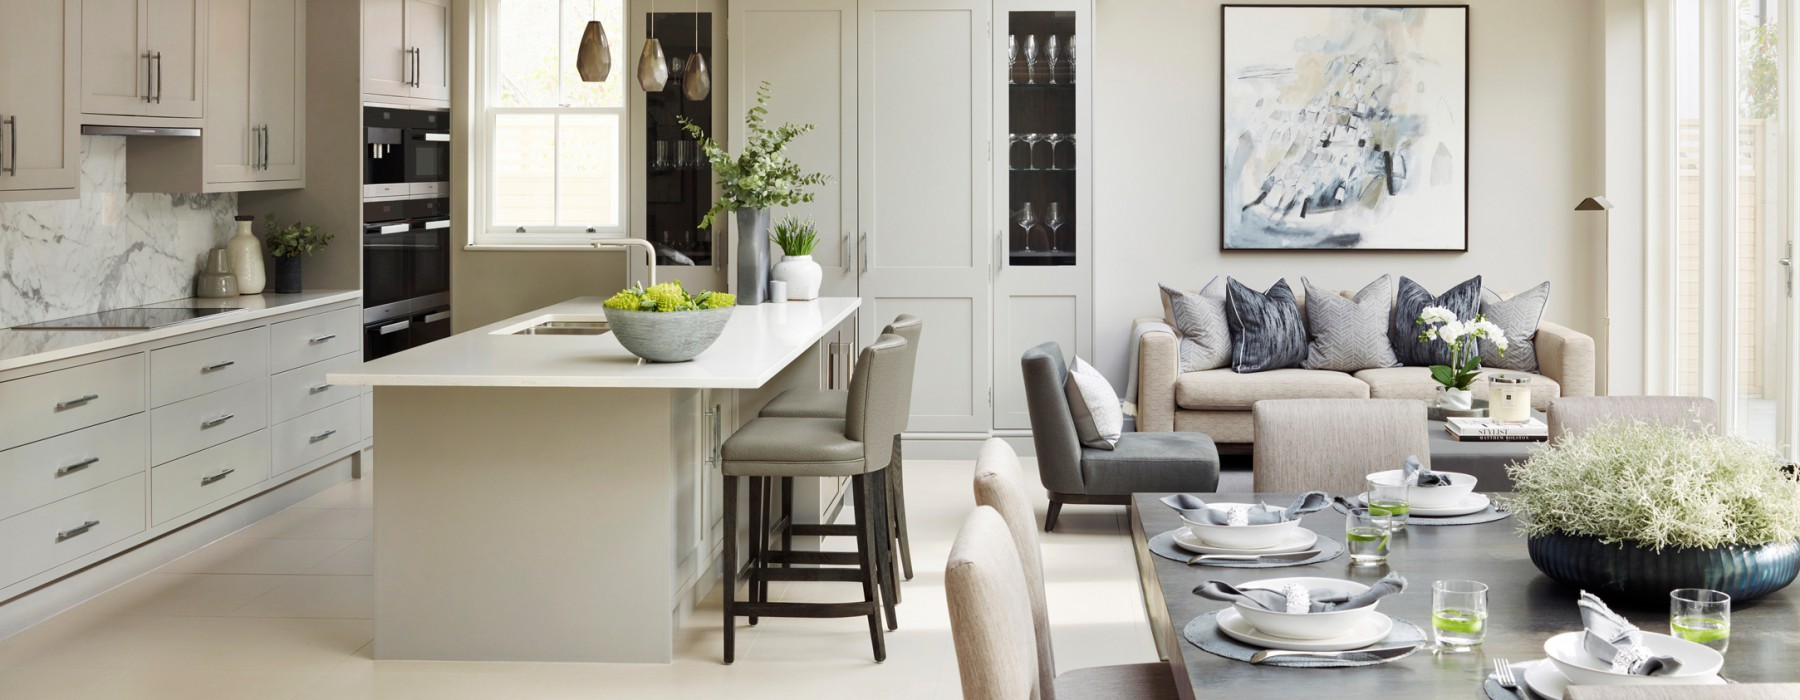 7 spring refresh tips from interior designers we love kathy kuo